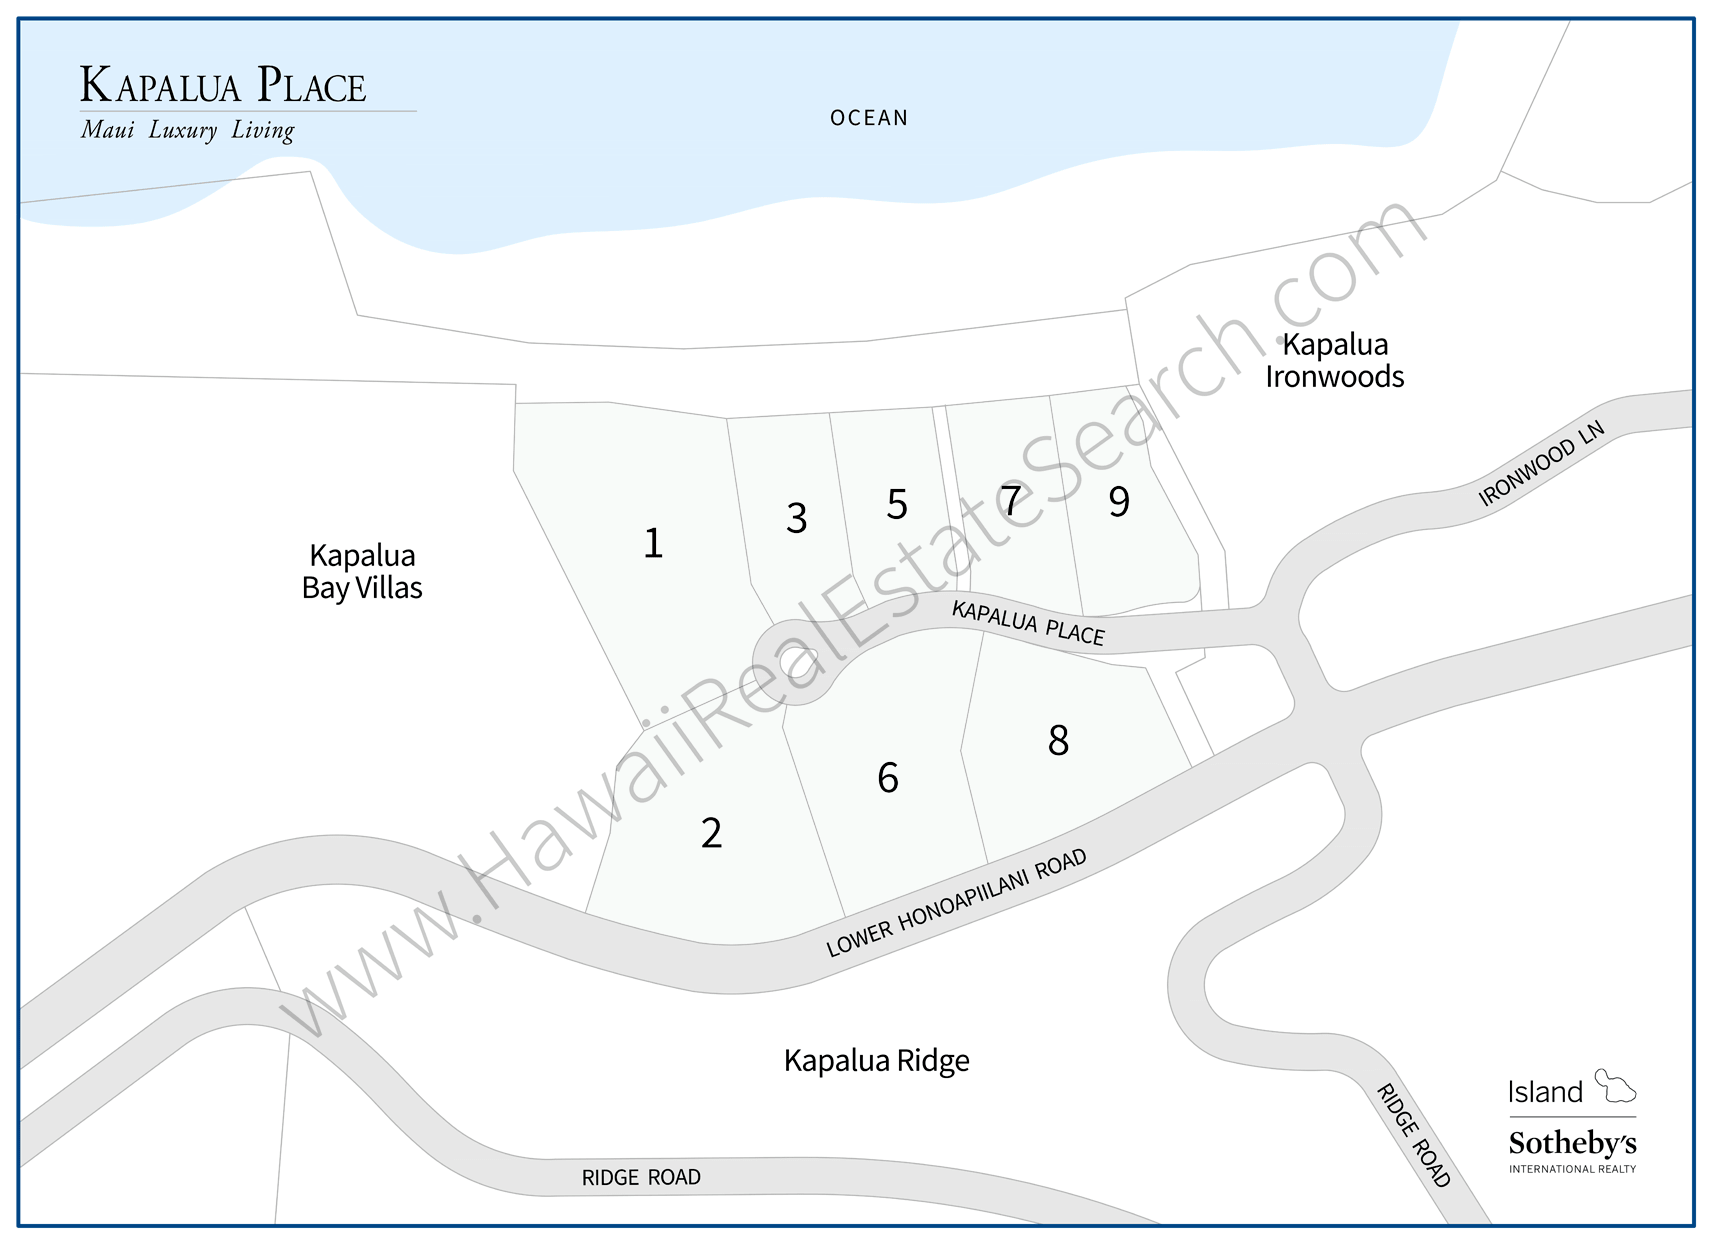 Kapalua Place Map Updated 2018